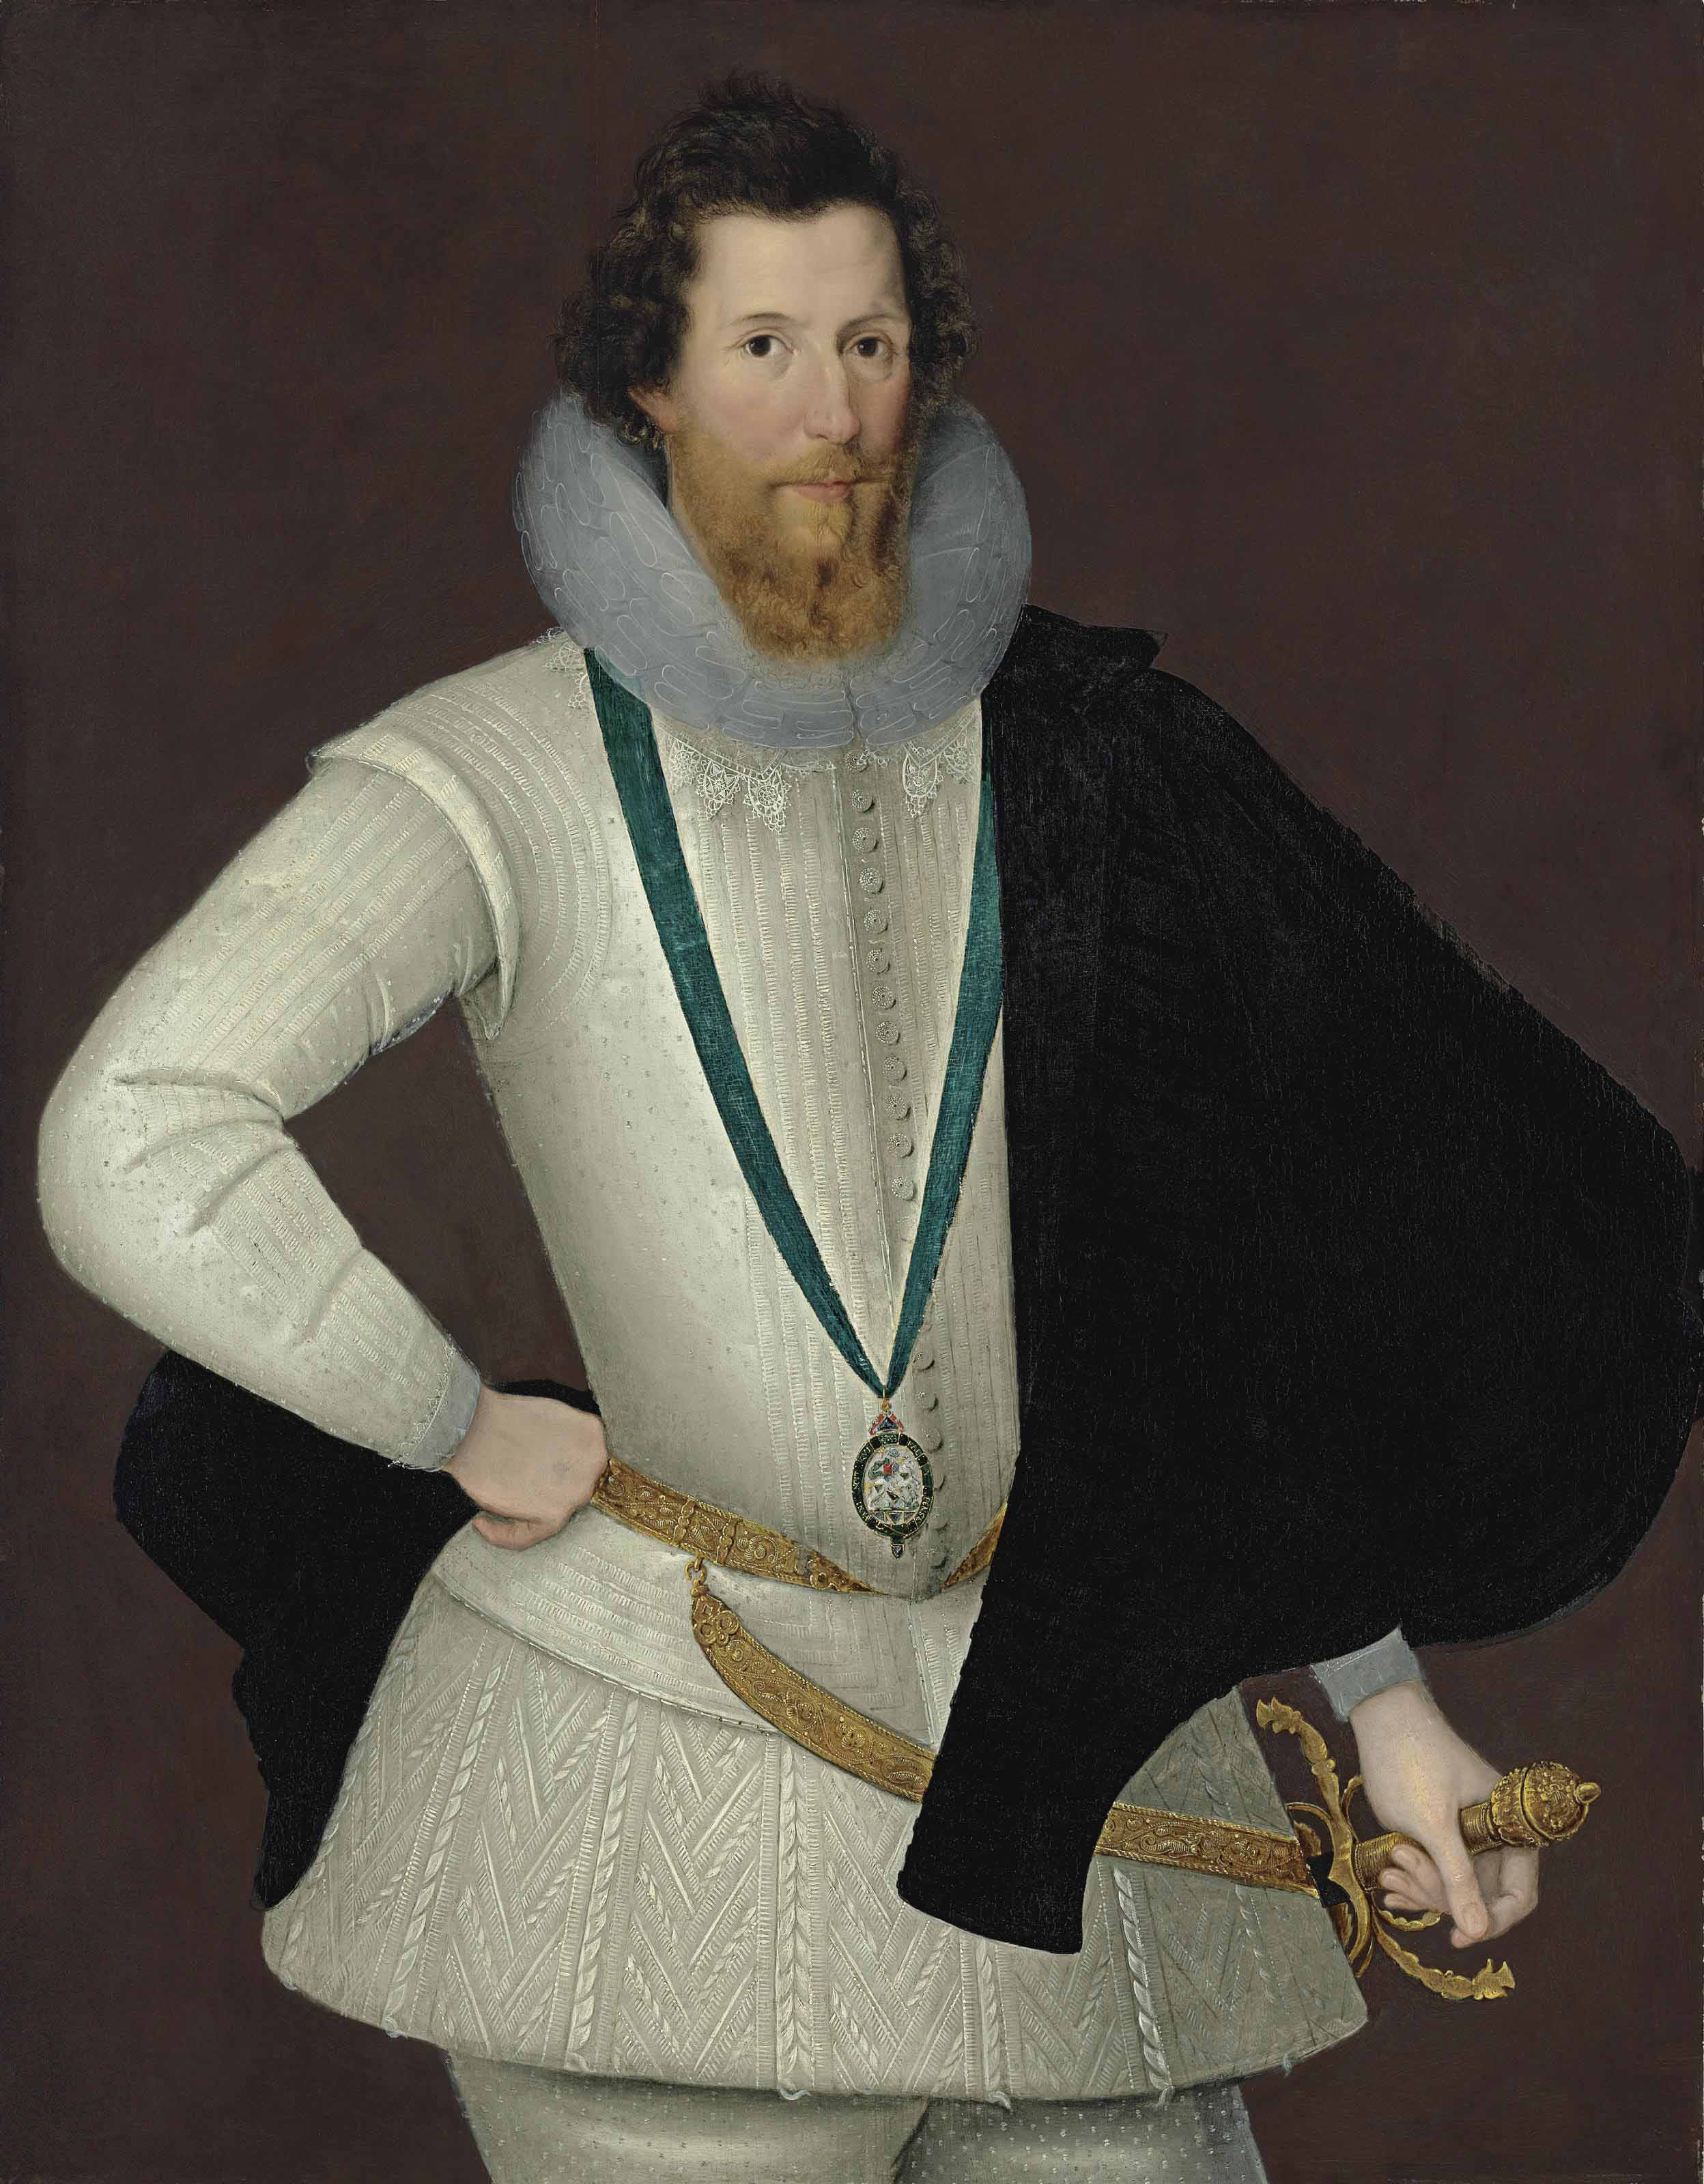 Portrait of Robert Devereux, 2nd Earl of Essex (1565-1601), three-quarter-length, in a white doublet and hose with a black cape, wearing the Order of the Garter